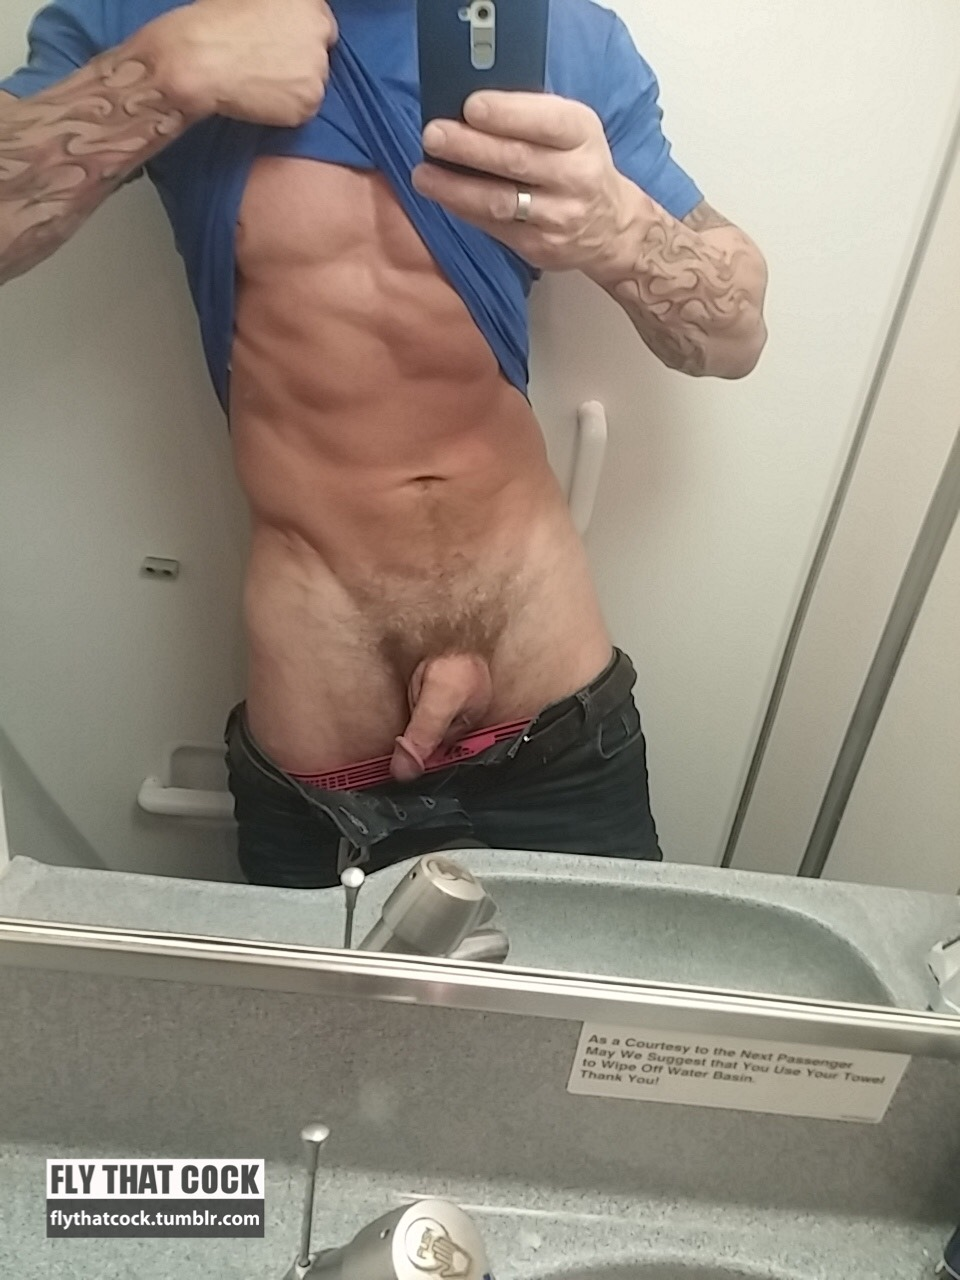 Cocks on a plane